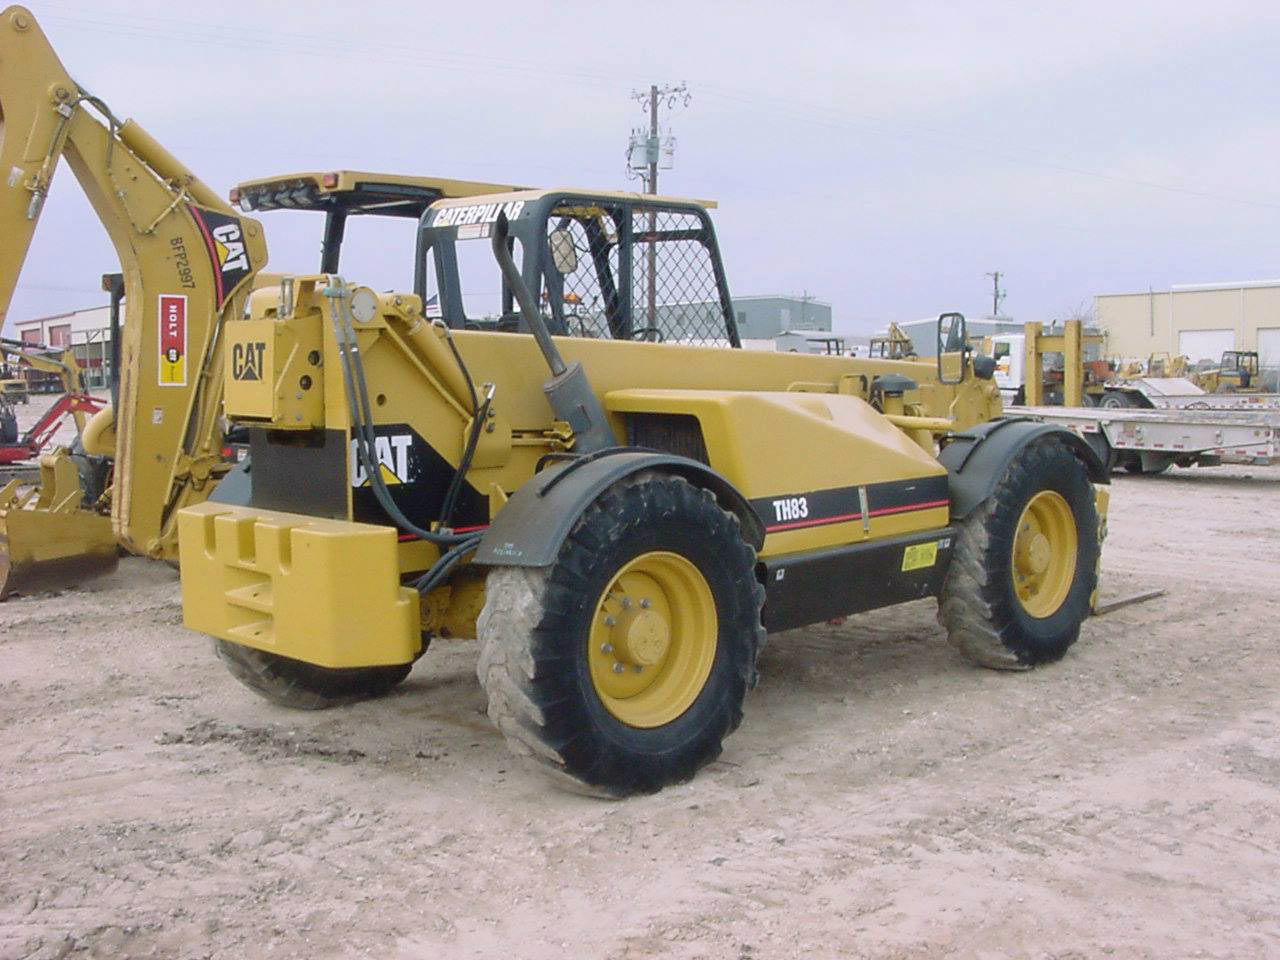 Caterpillar th83 photo - 1